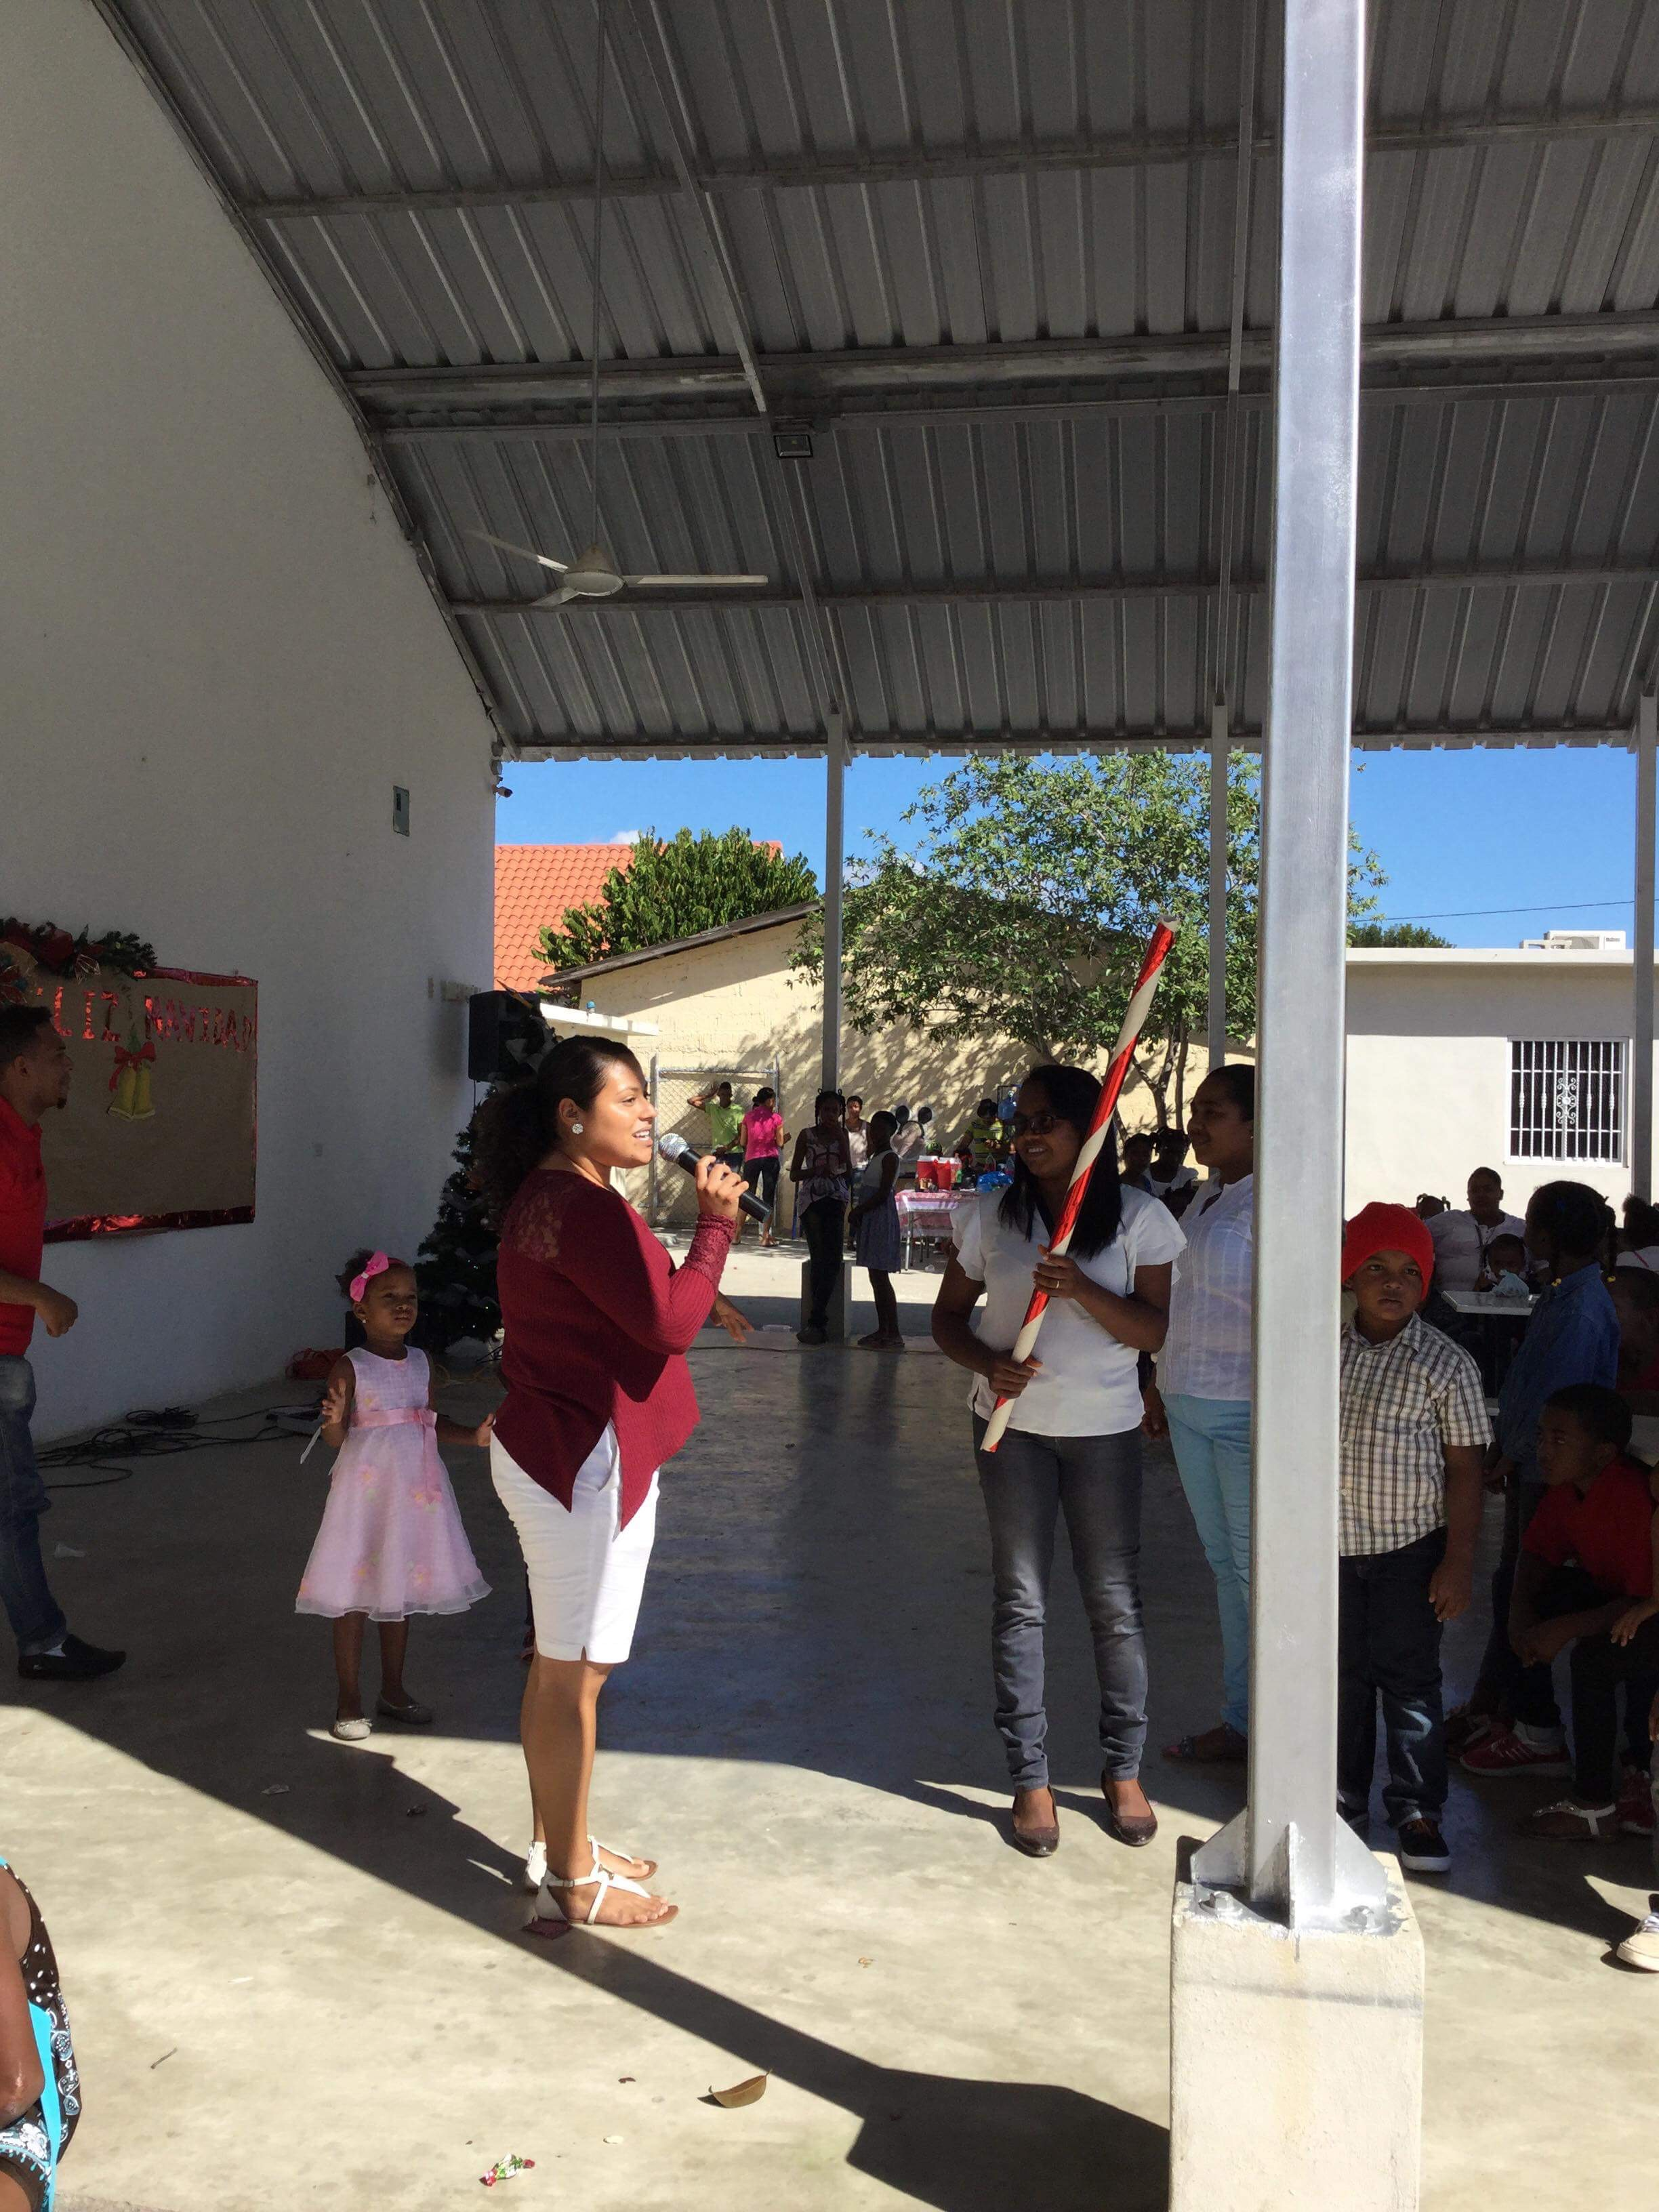 Zaira shares her Mexican culture with the school by showing them how to break the piñata.